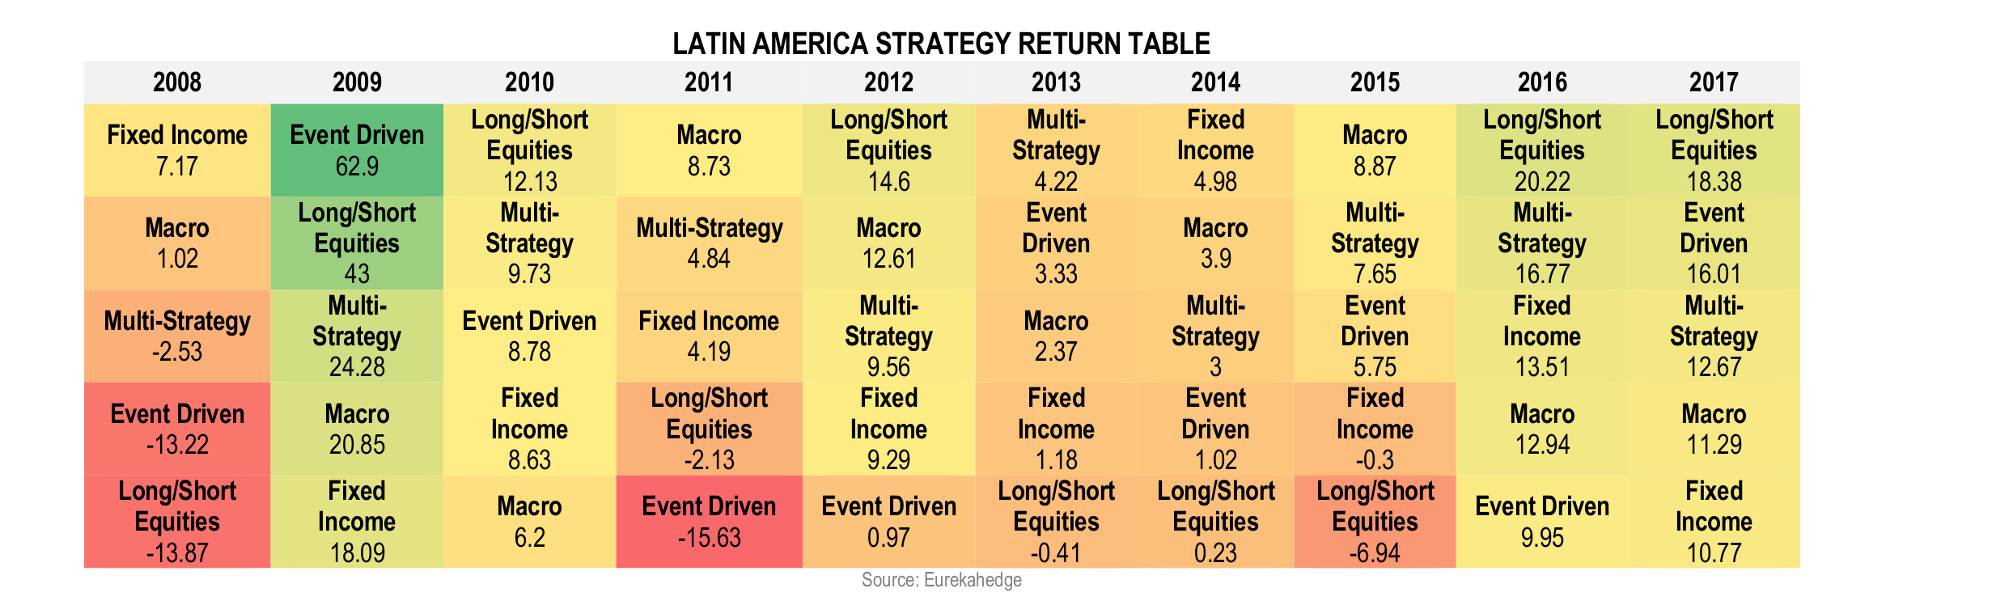 Latin American Hedge Fund Infographic November 2017 - Strategy Returns